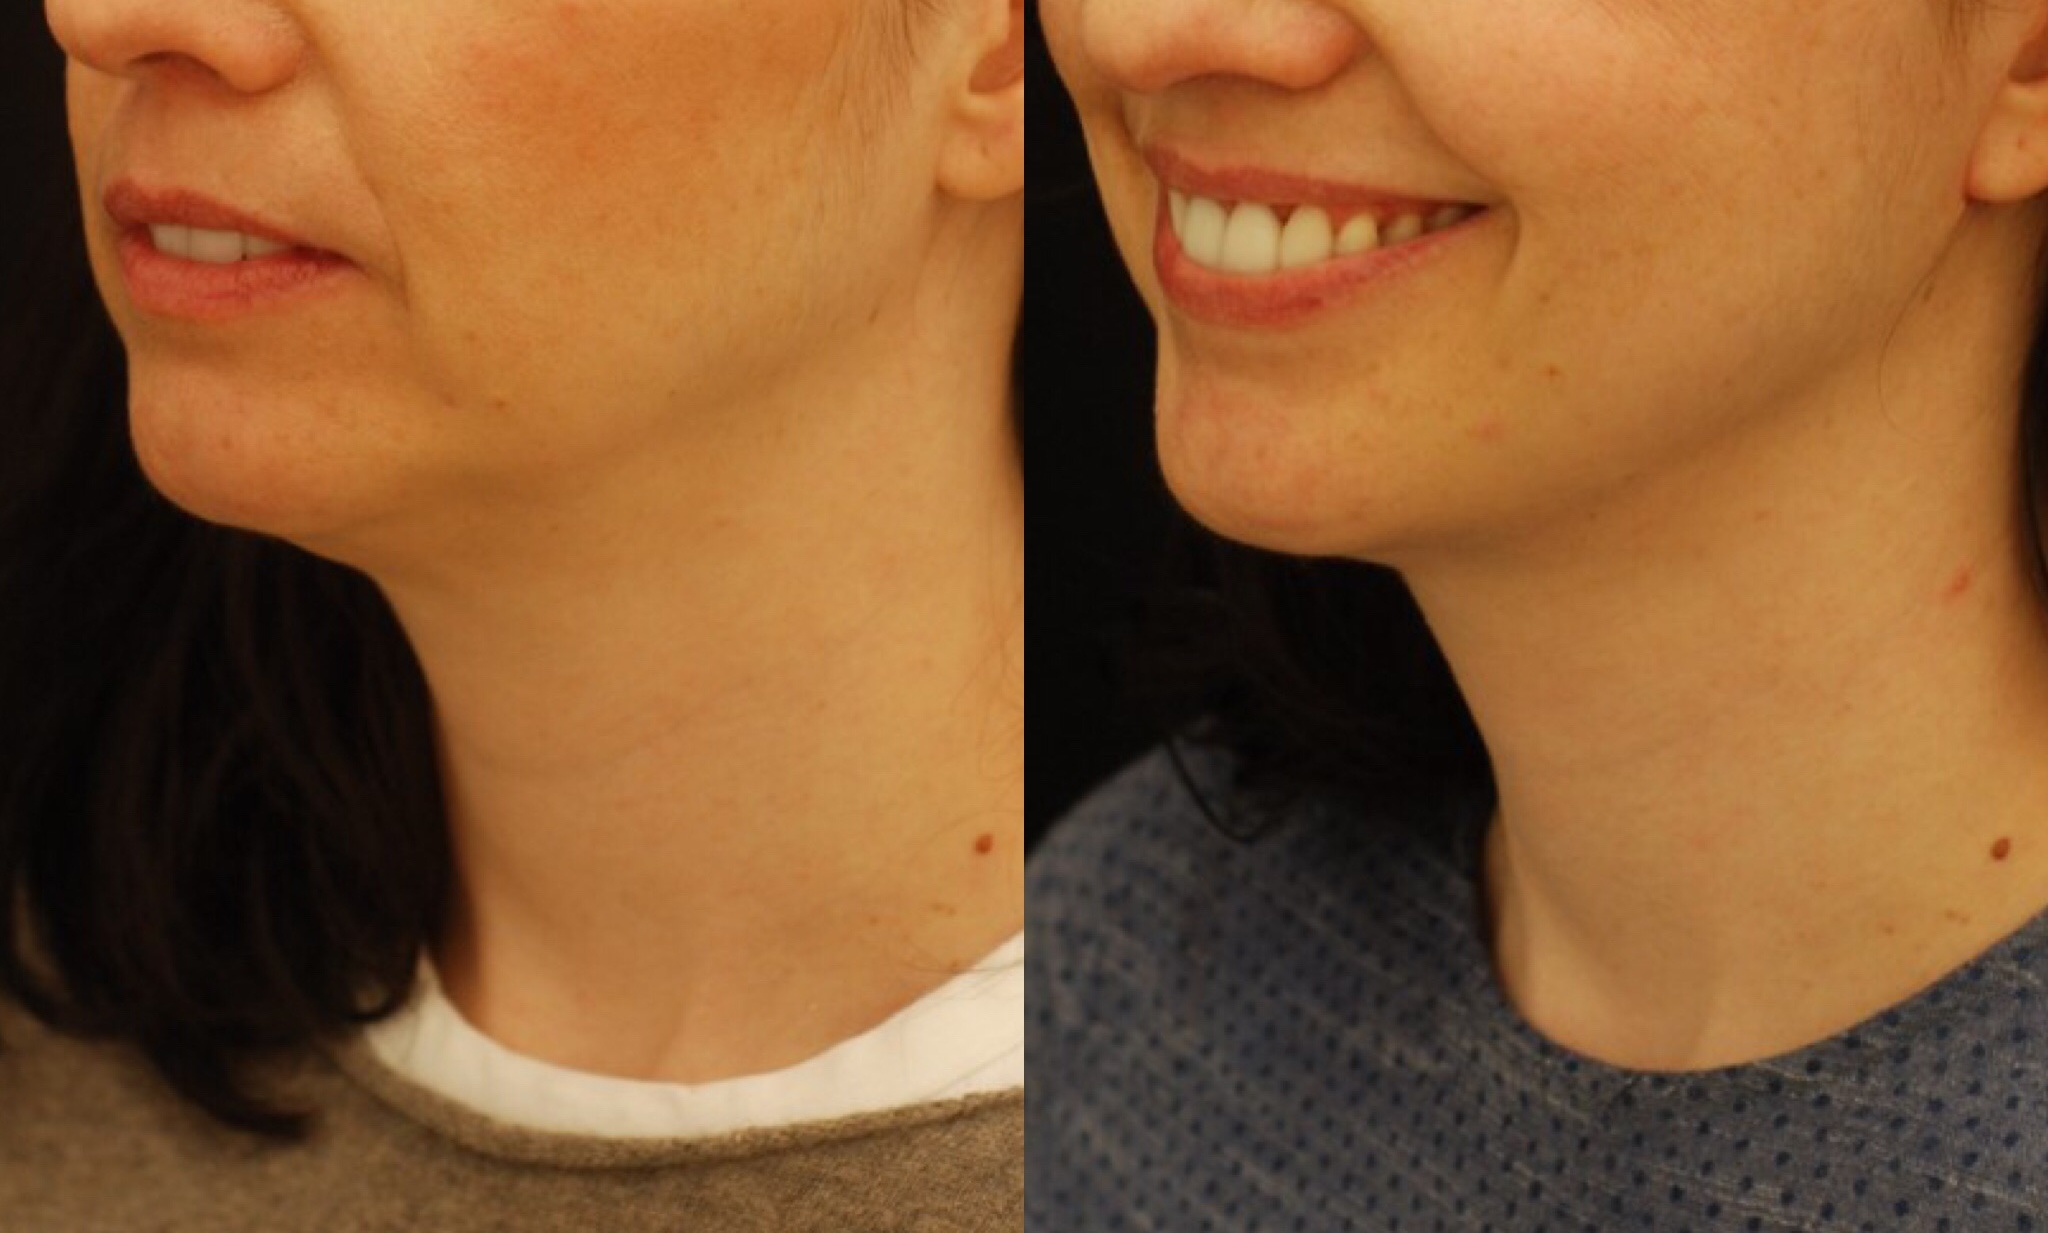 Actual patient of Dr. Devgan, before and 5 weeks after facelift. Note the improvement in her jawline, neck, and under-the-chin contour.